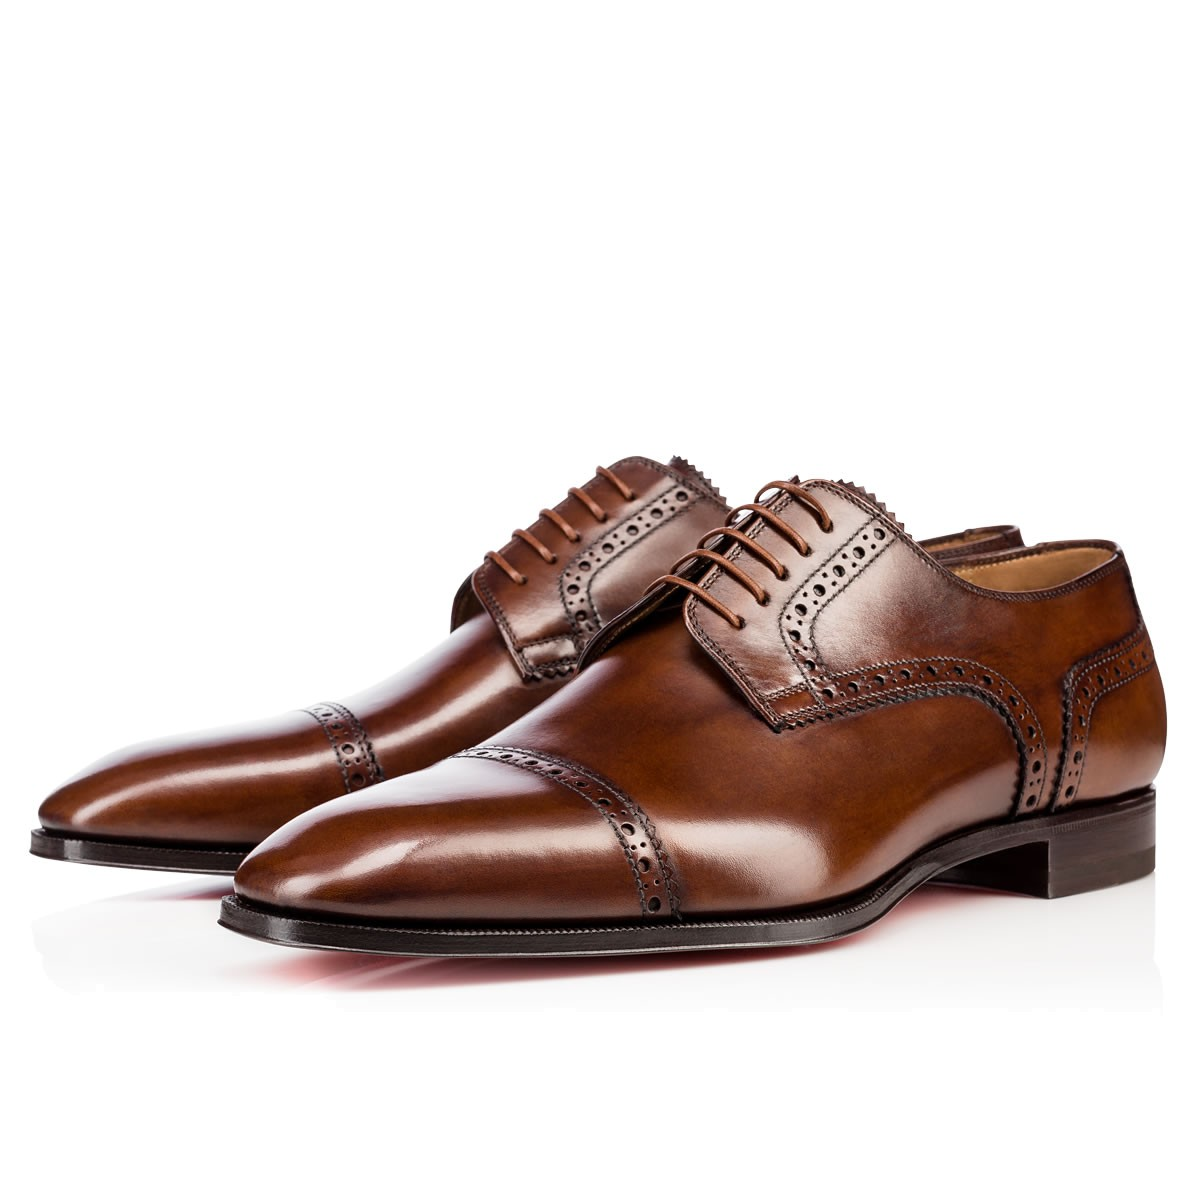 Cousin Charles Flat Havane Leather - Men Shoes - Christian Louboutin